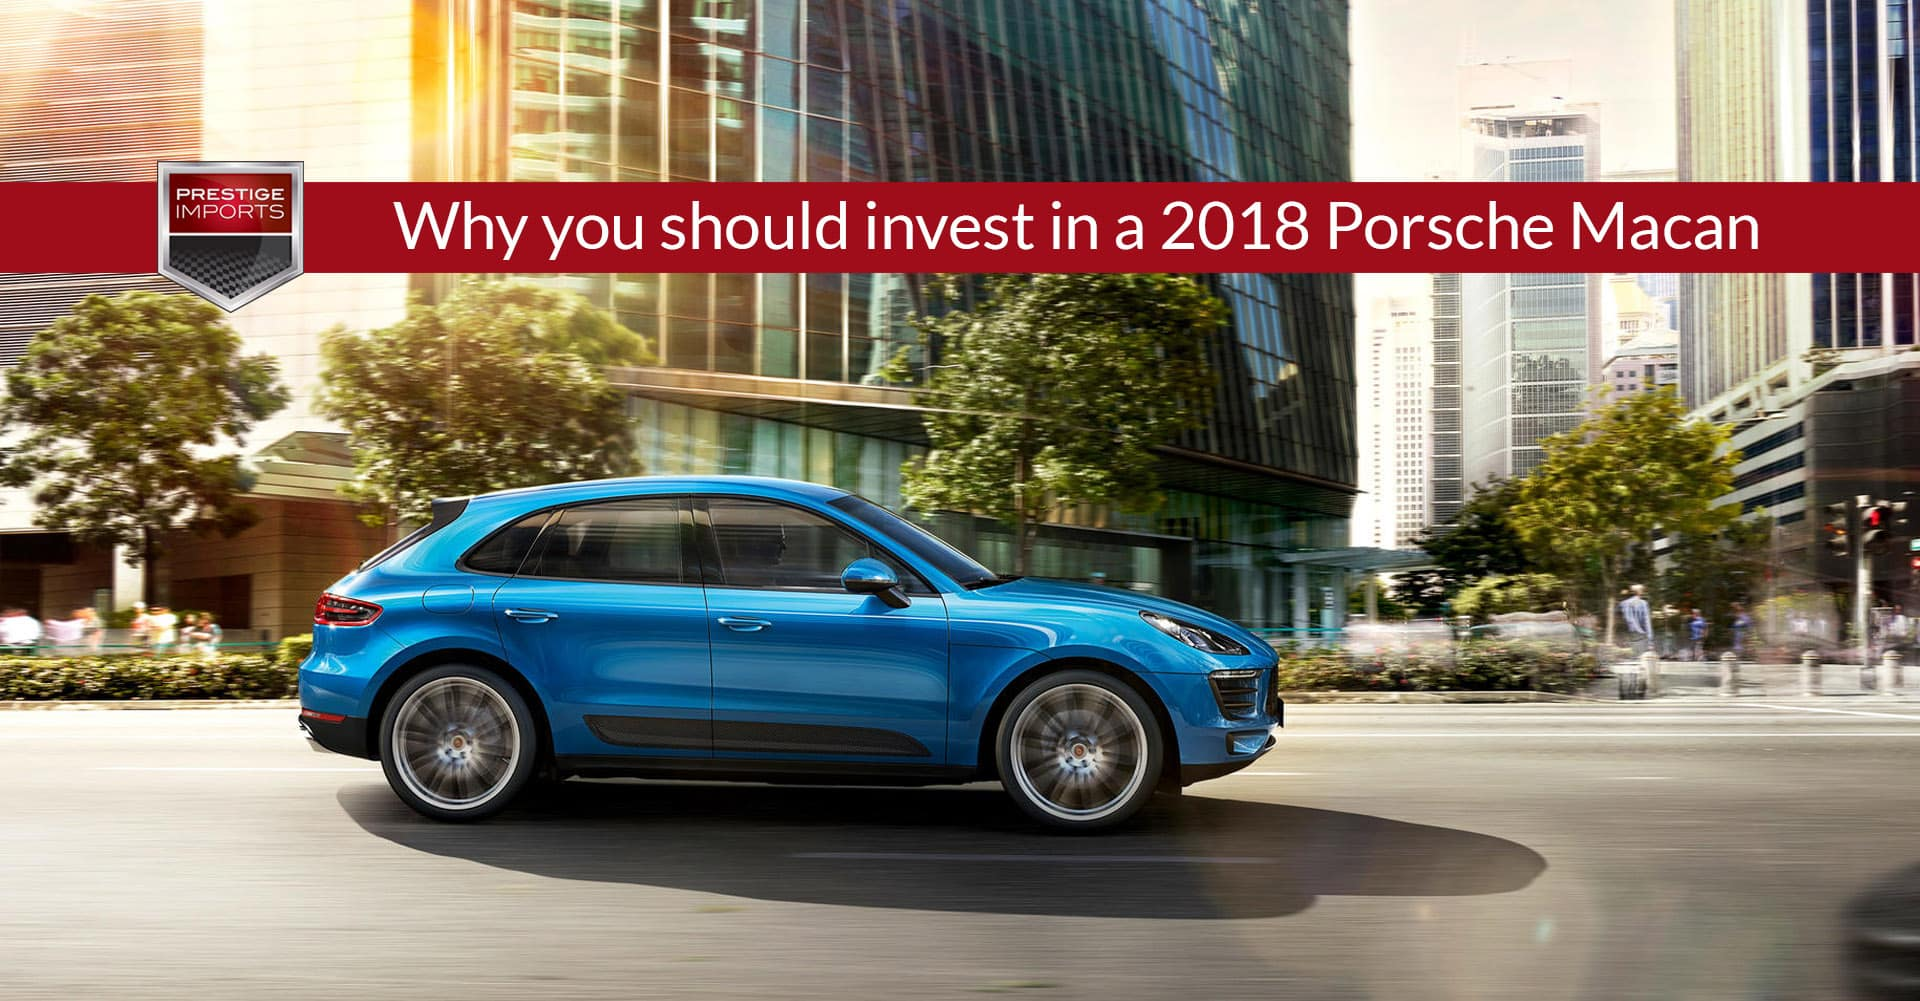 Why You Should Invest In A 2018 Porsche Macan